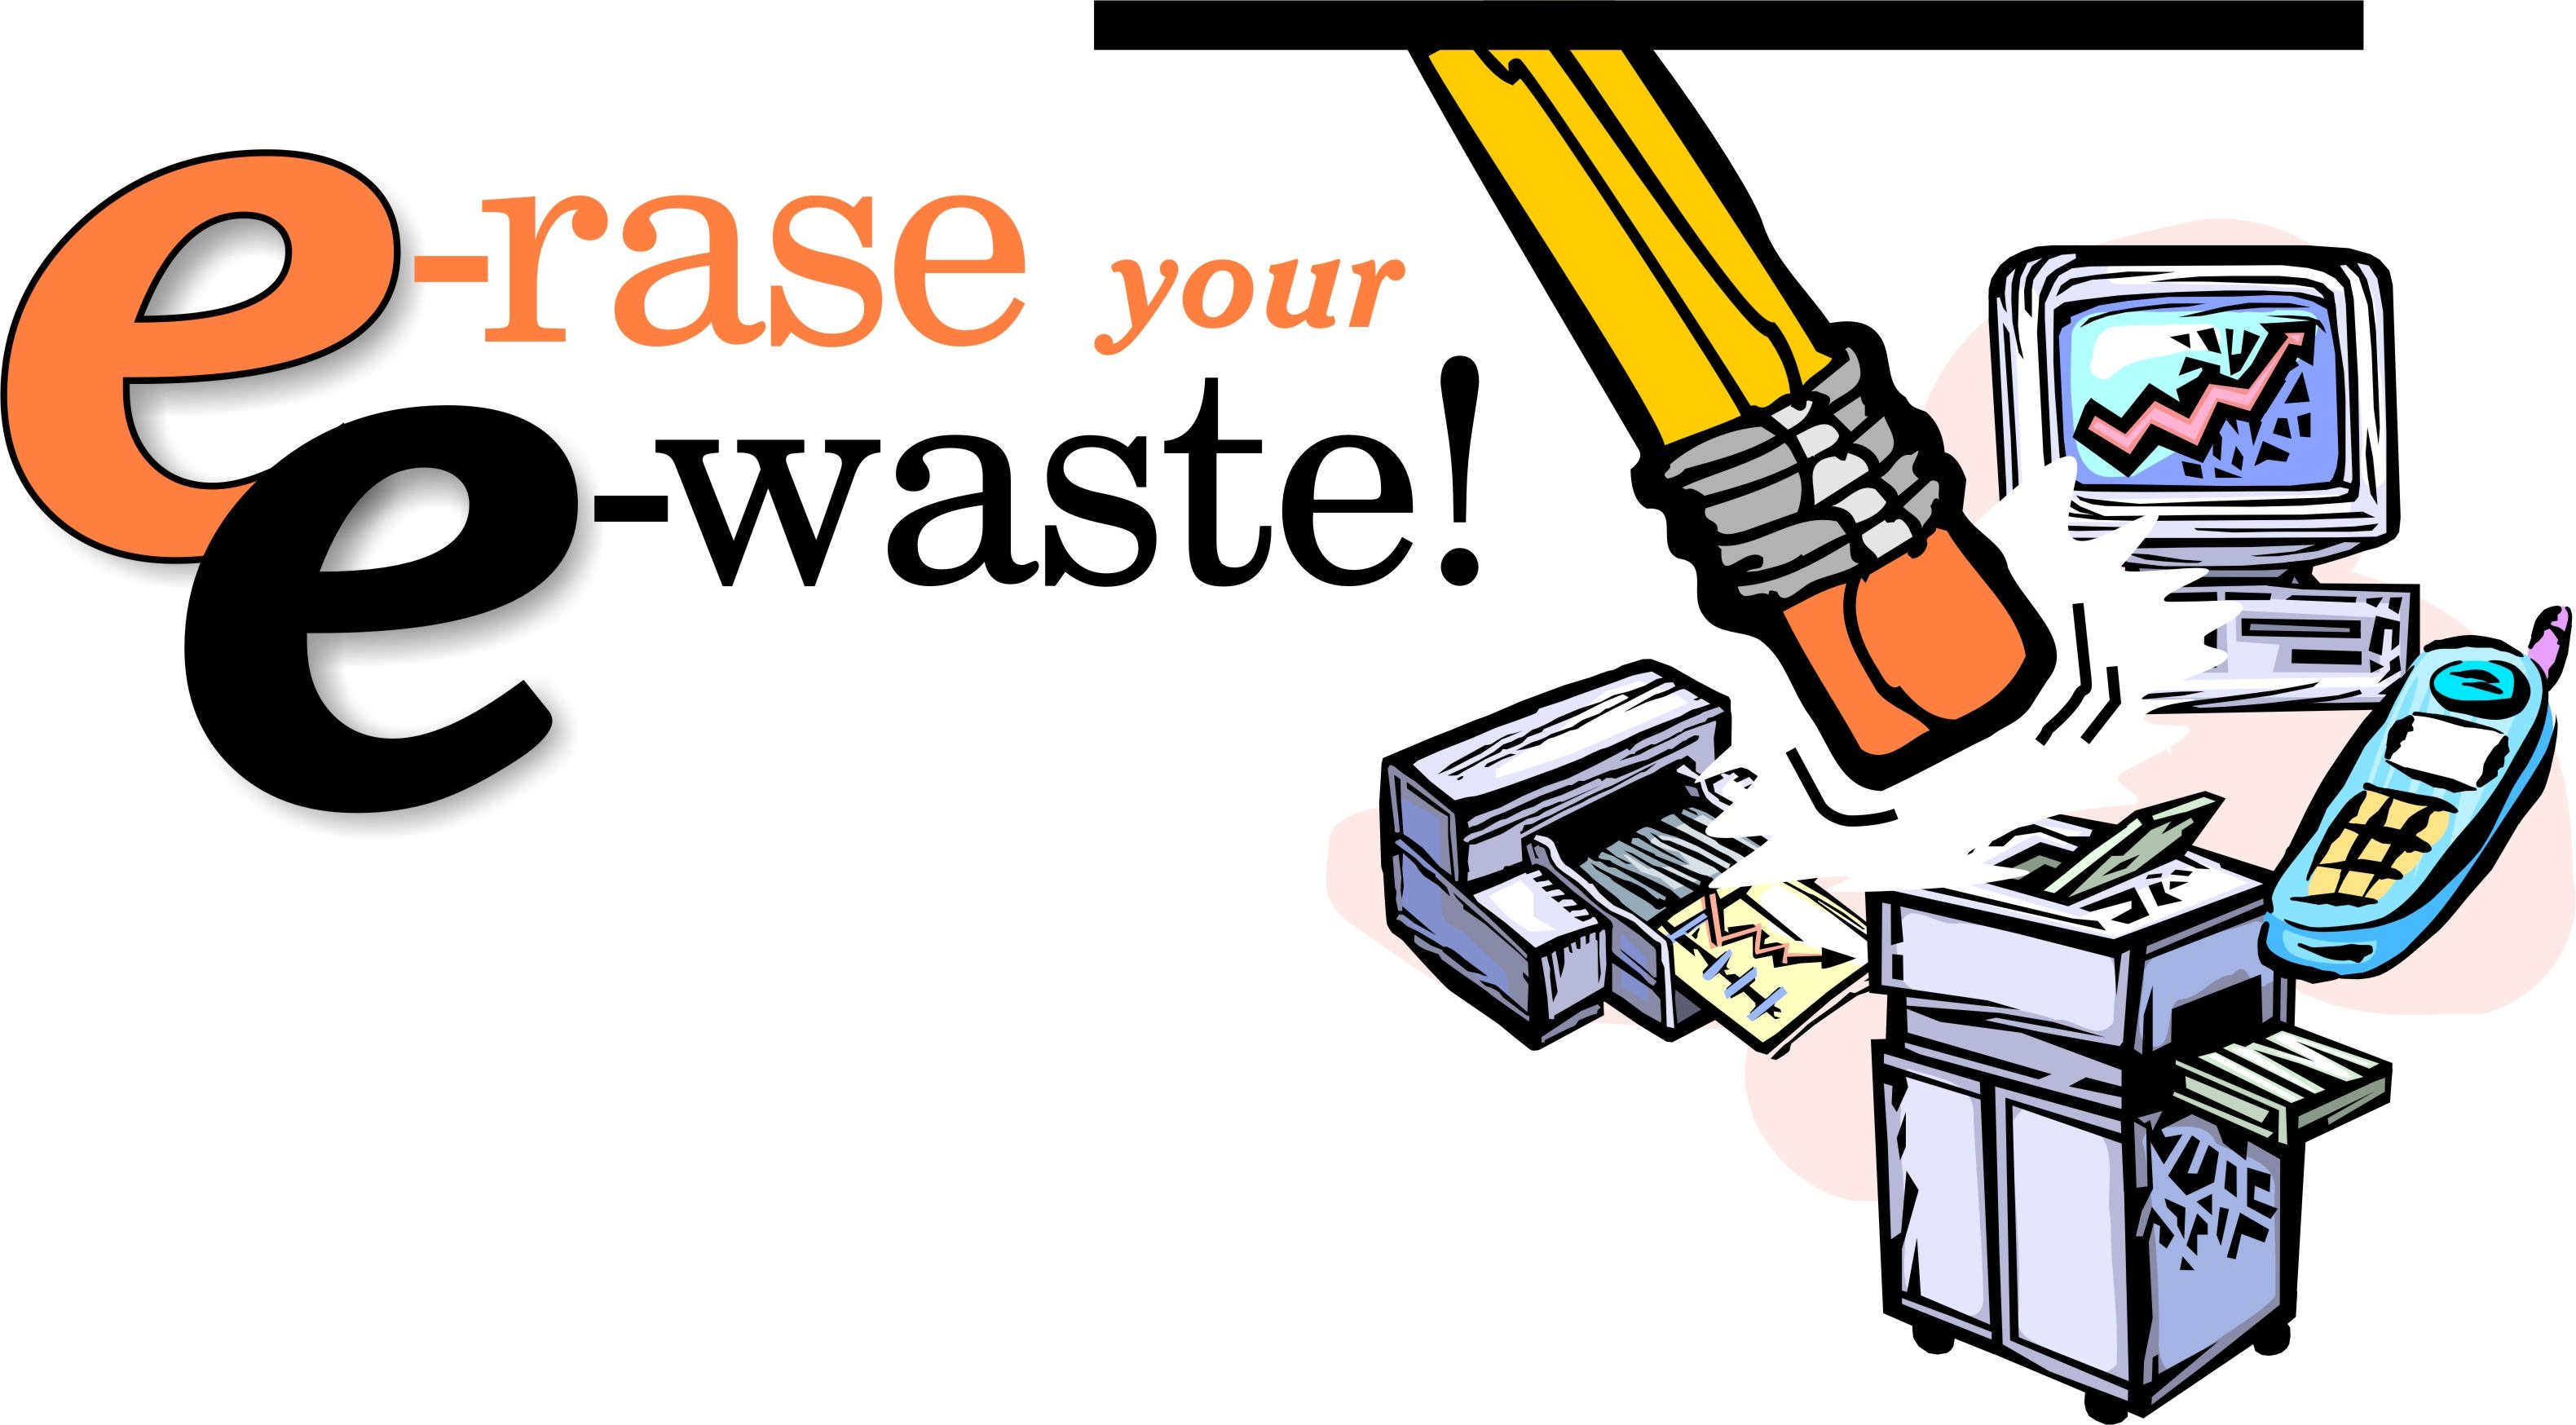 Pollution clipart waste management #15